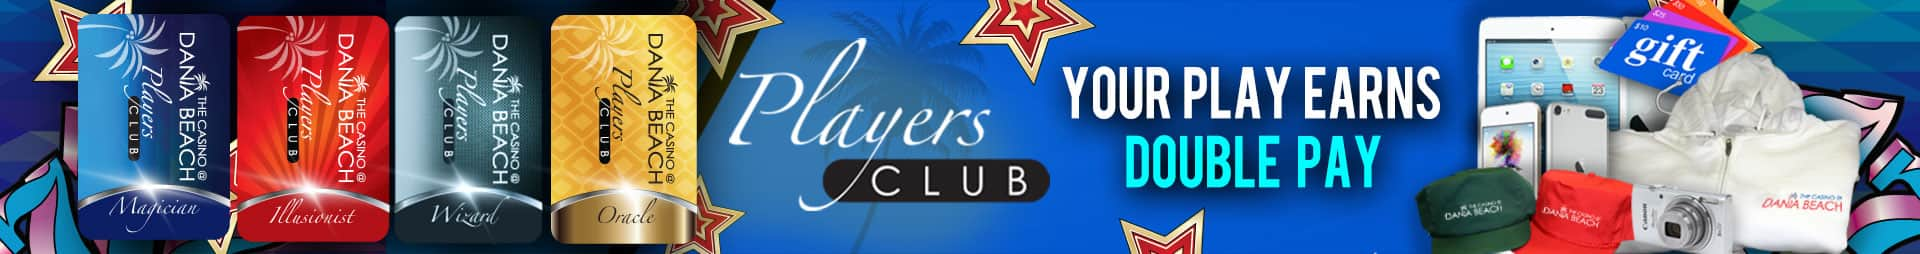 Banner. Players club. Your play earns double pay.